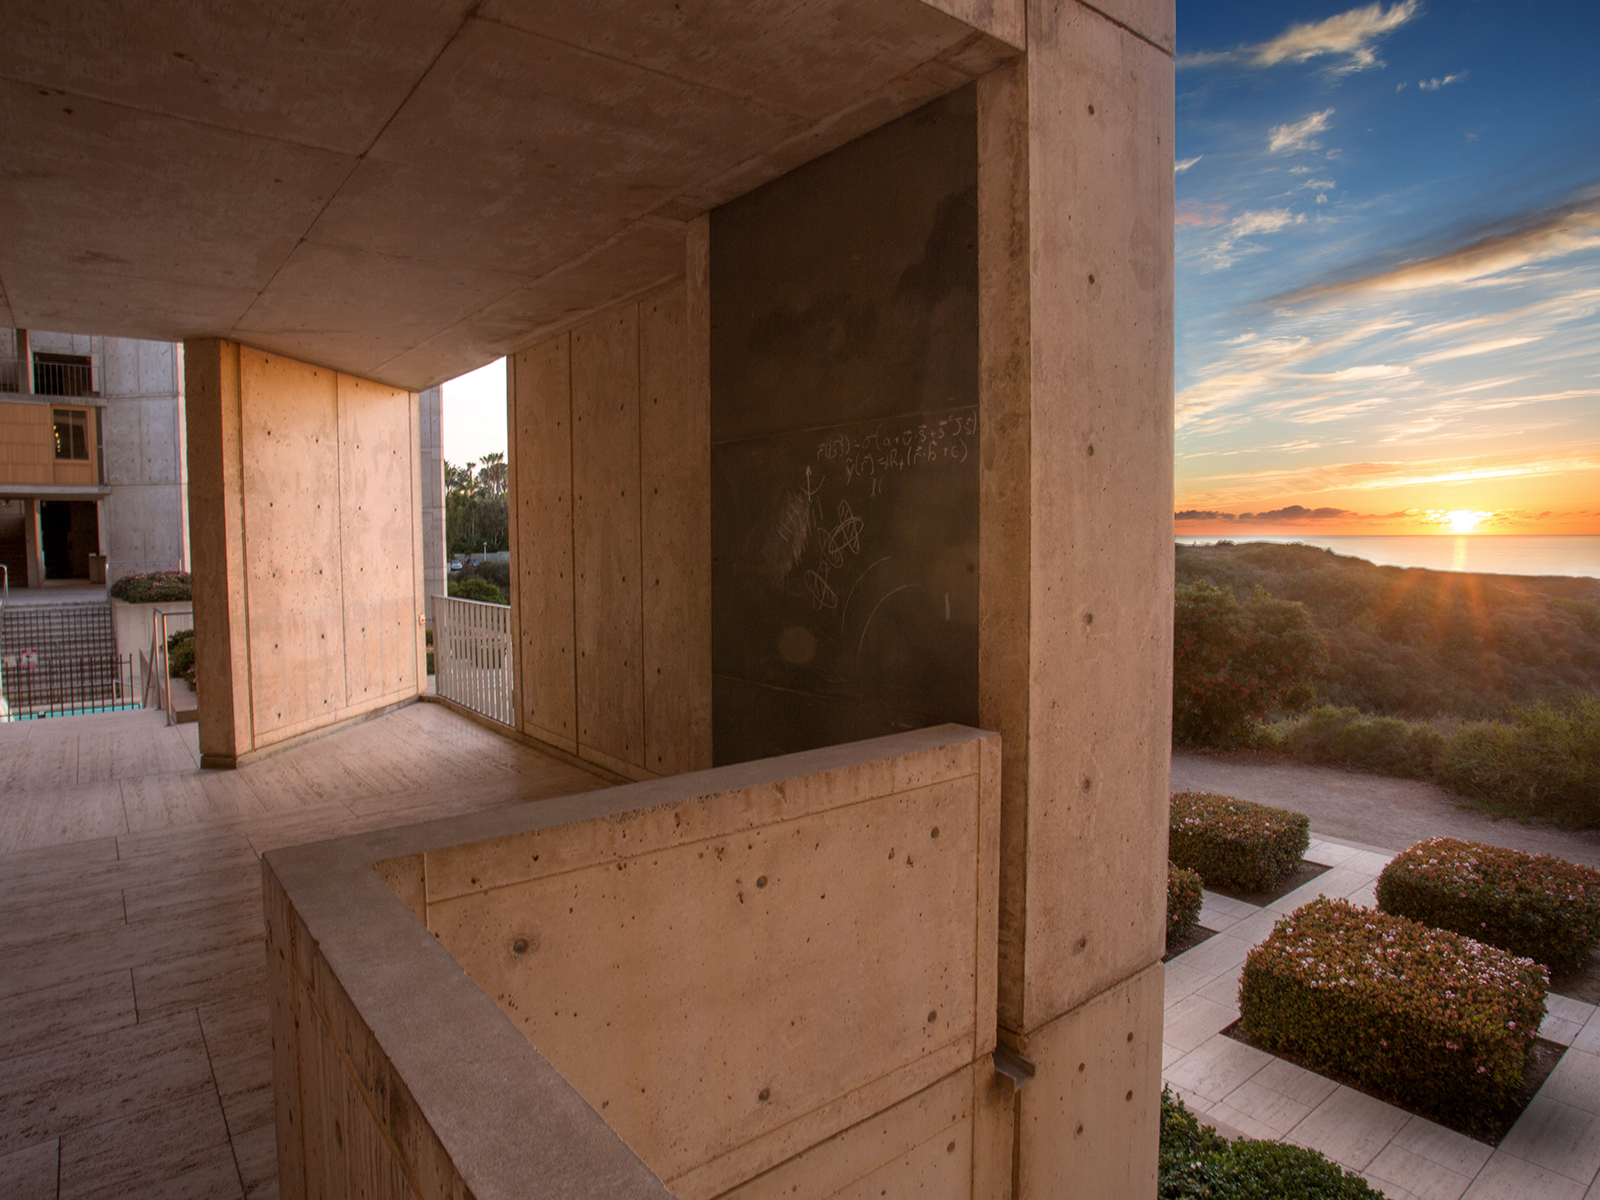 Sunset from a top floor of the Salk Institute